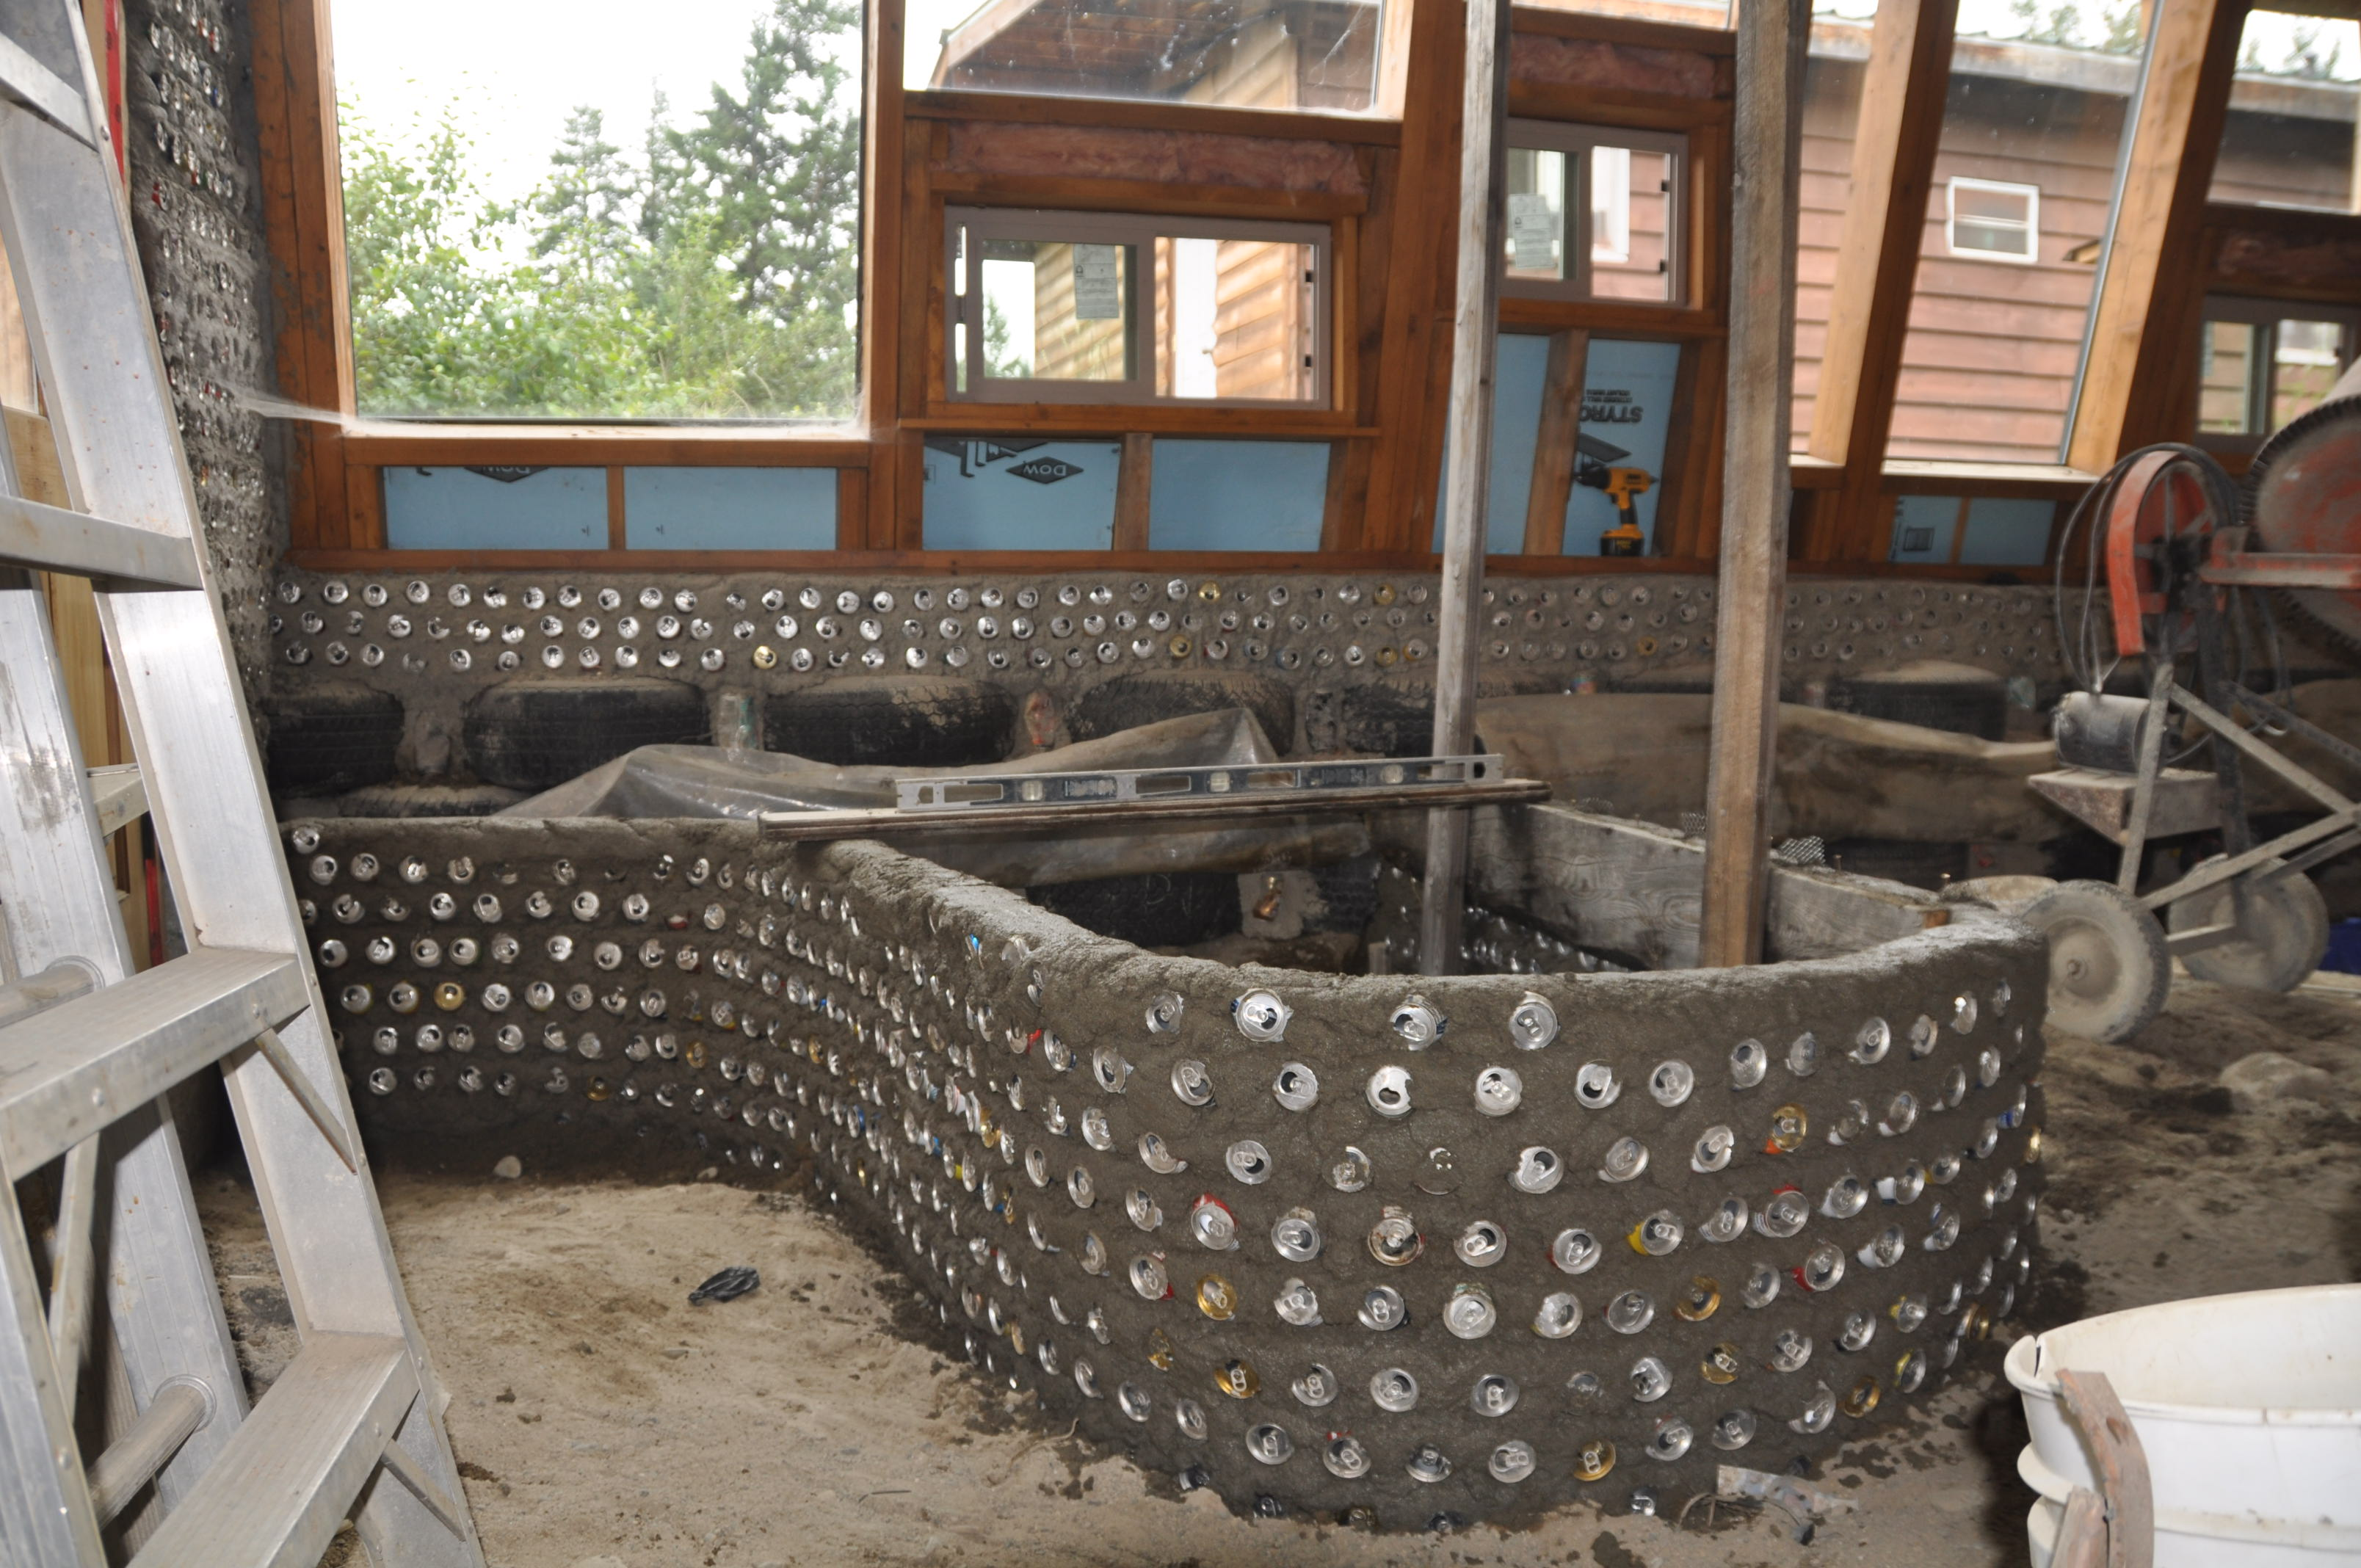 Laying Out Grey Water Planters and Plumbing for the Earthship